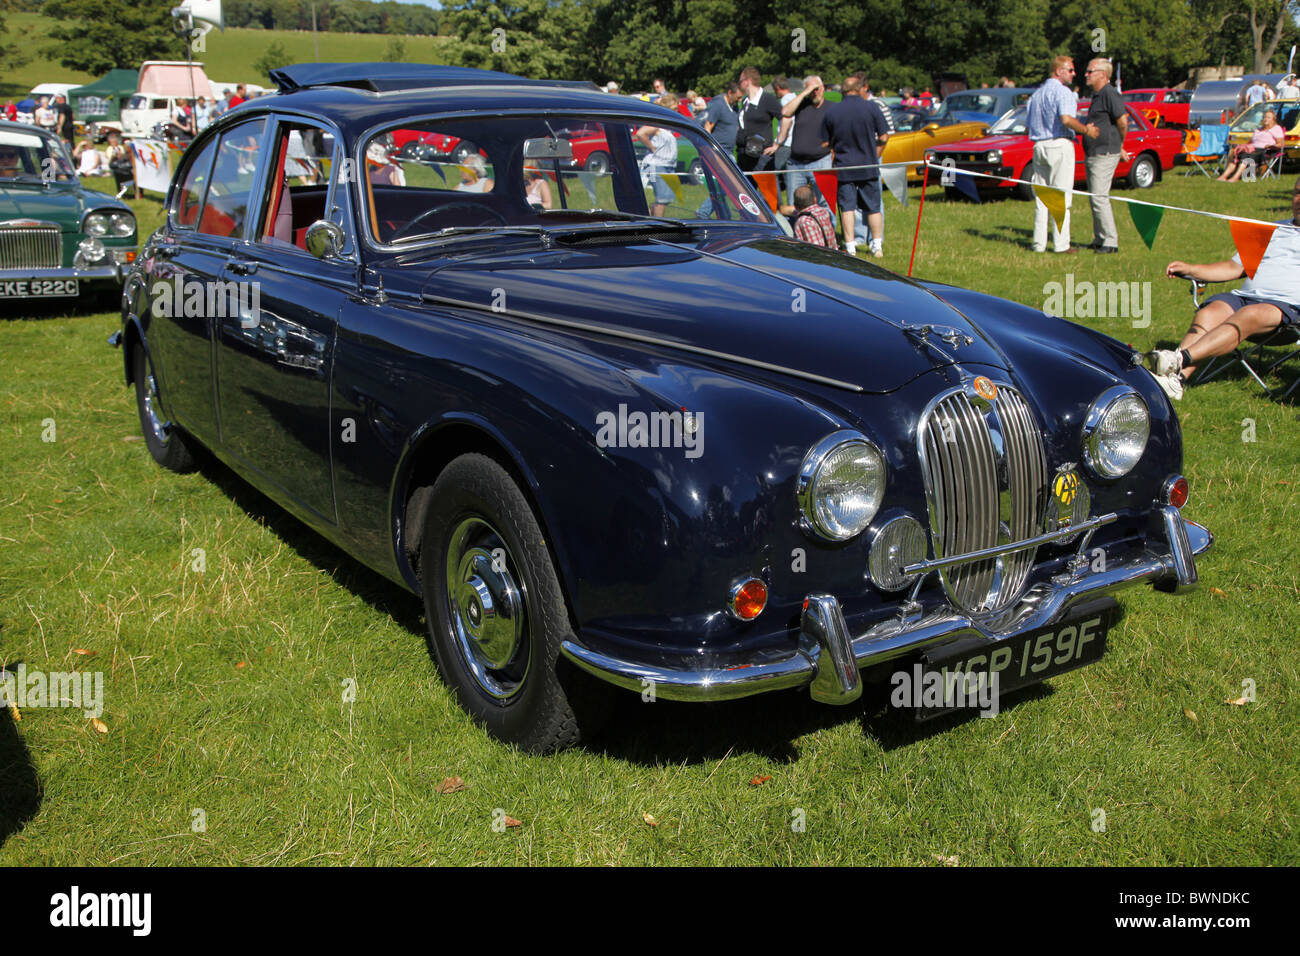 BLUE 1968 MKII JAGUAR CAR STAINDROP YORKSHIRE RABY CASTLE STAINDROP NORTH YORKSHIRE STAINDROP NORTH YORKSHIRE 22 - Stock Image